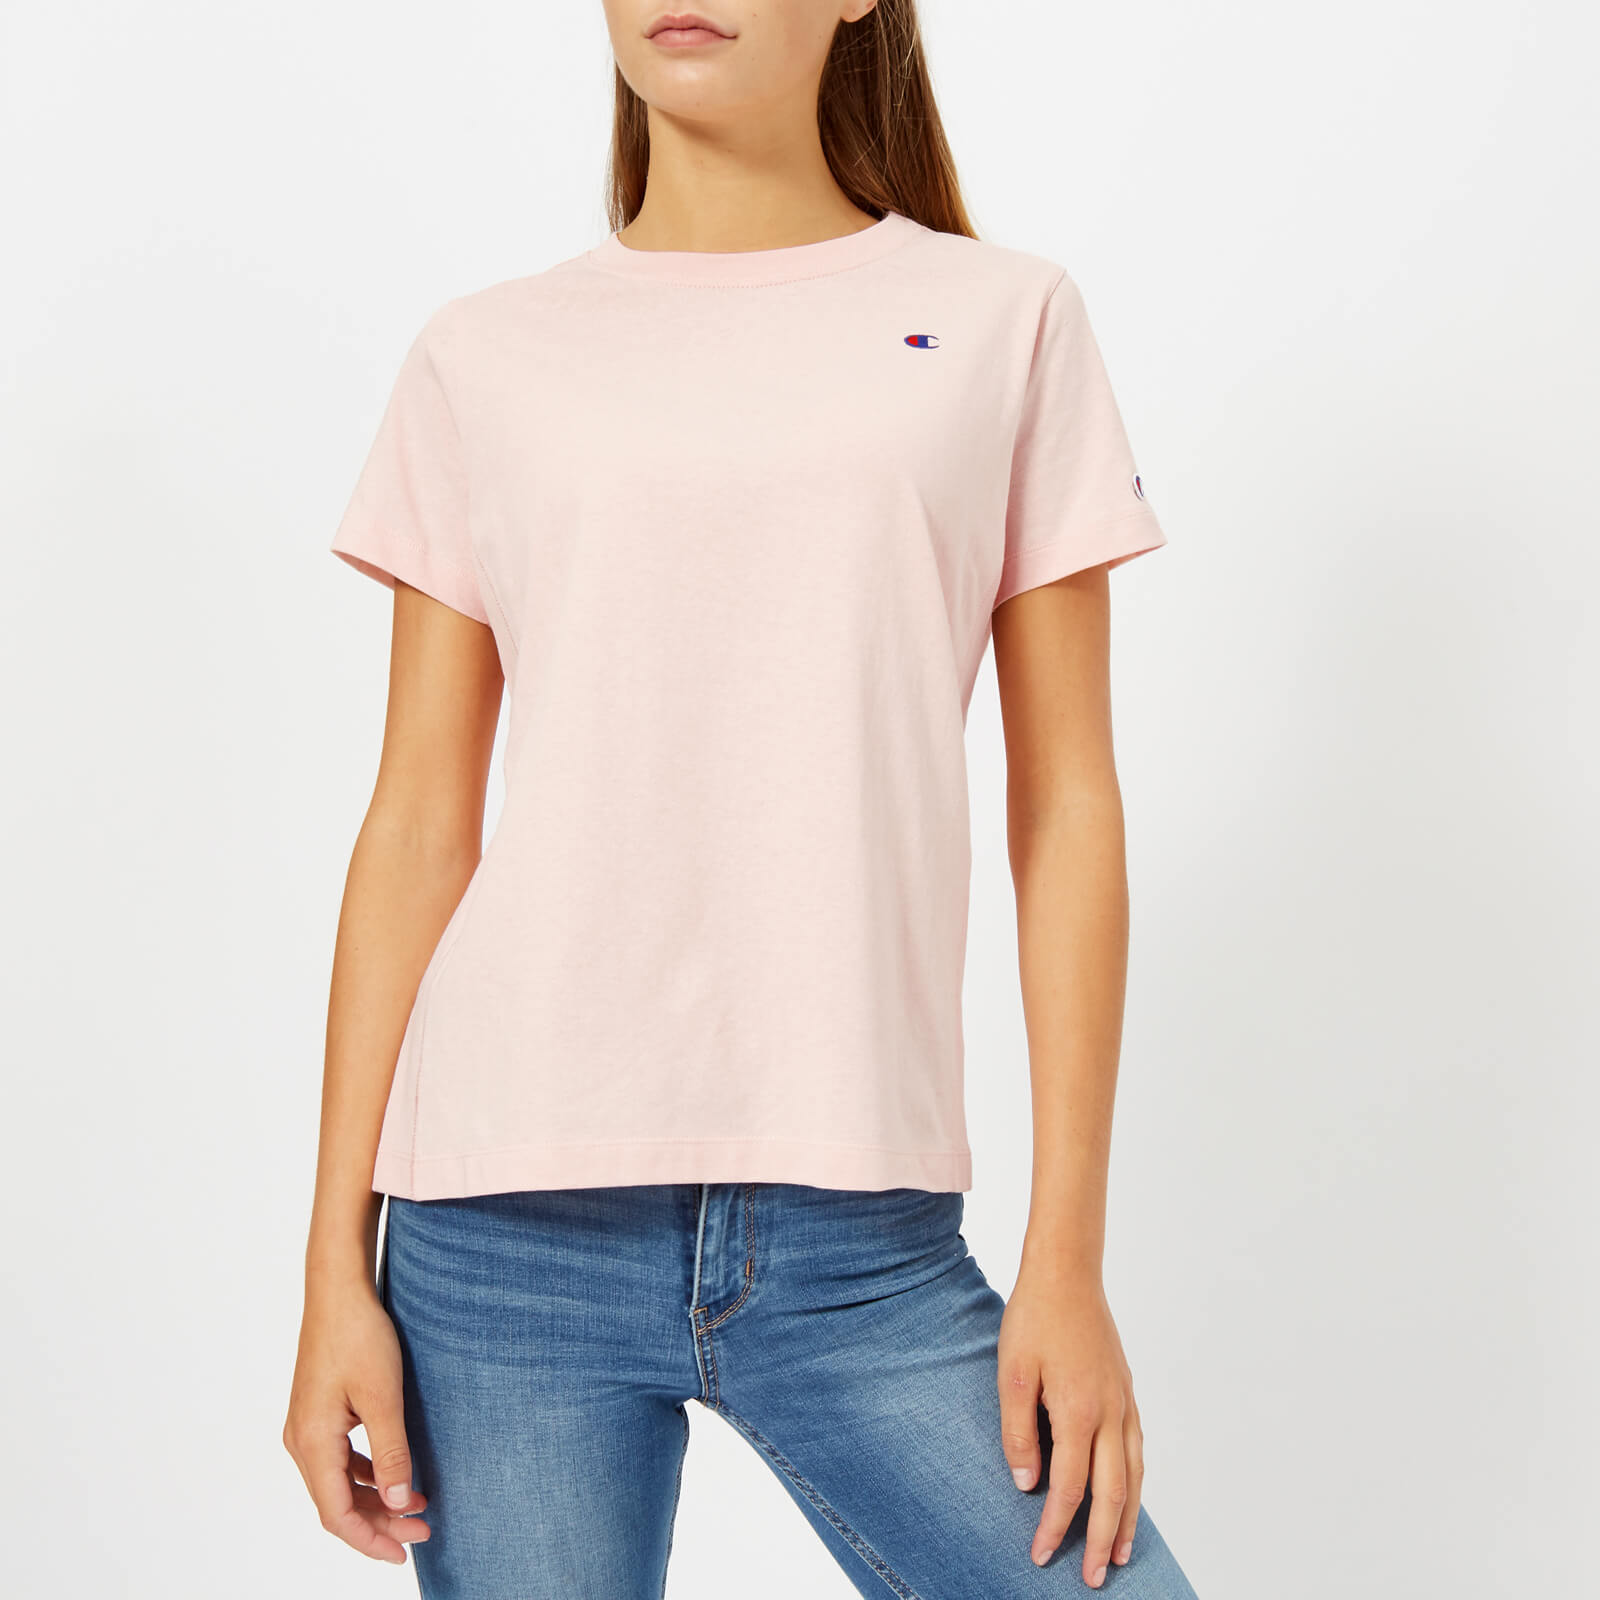 48eddc4b Champion Women's Short Sleeve T-Shirt - Pink - Free UK Delivery over £50